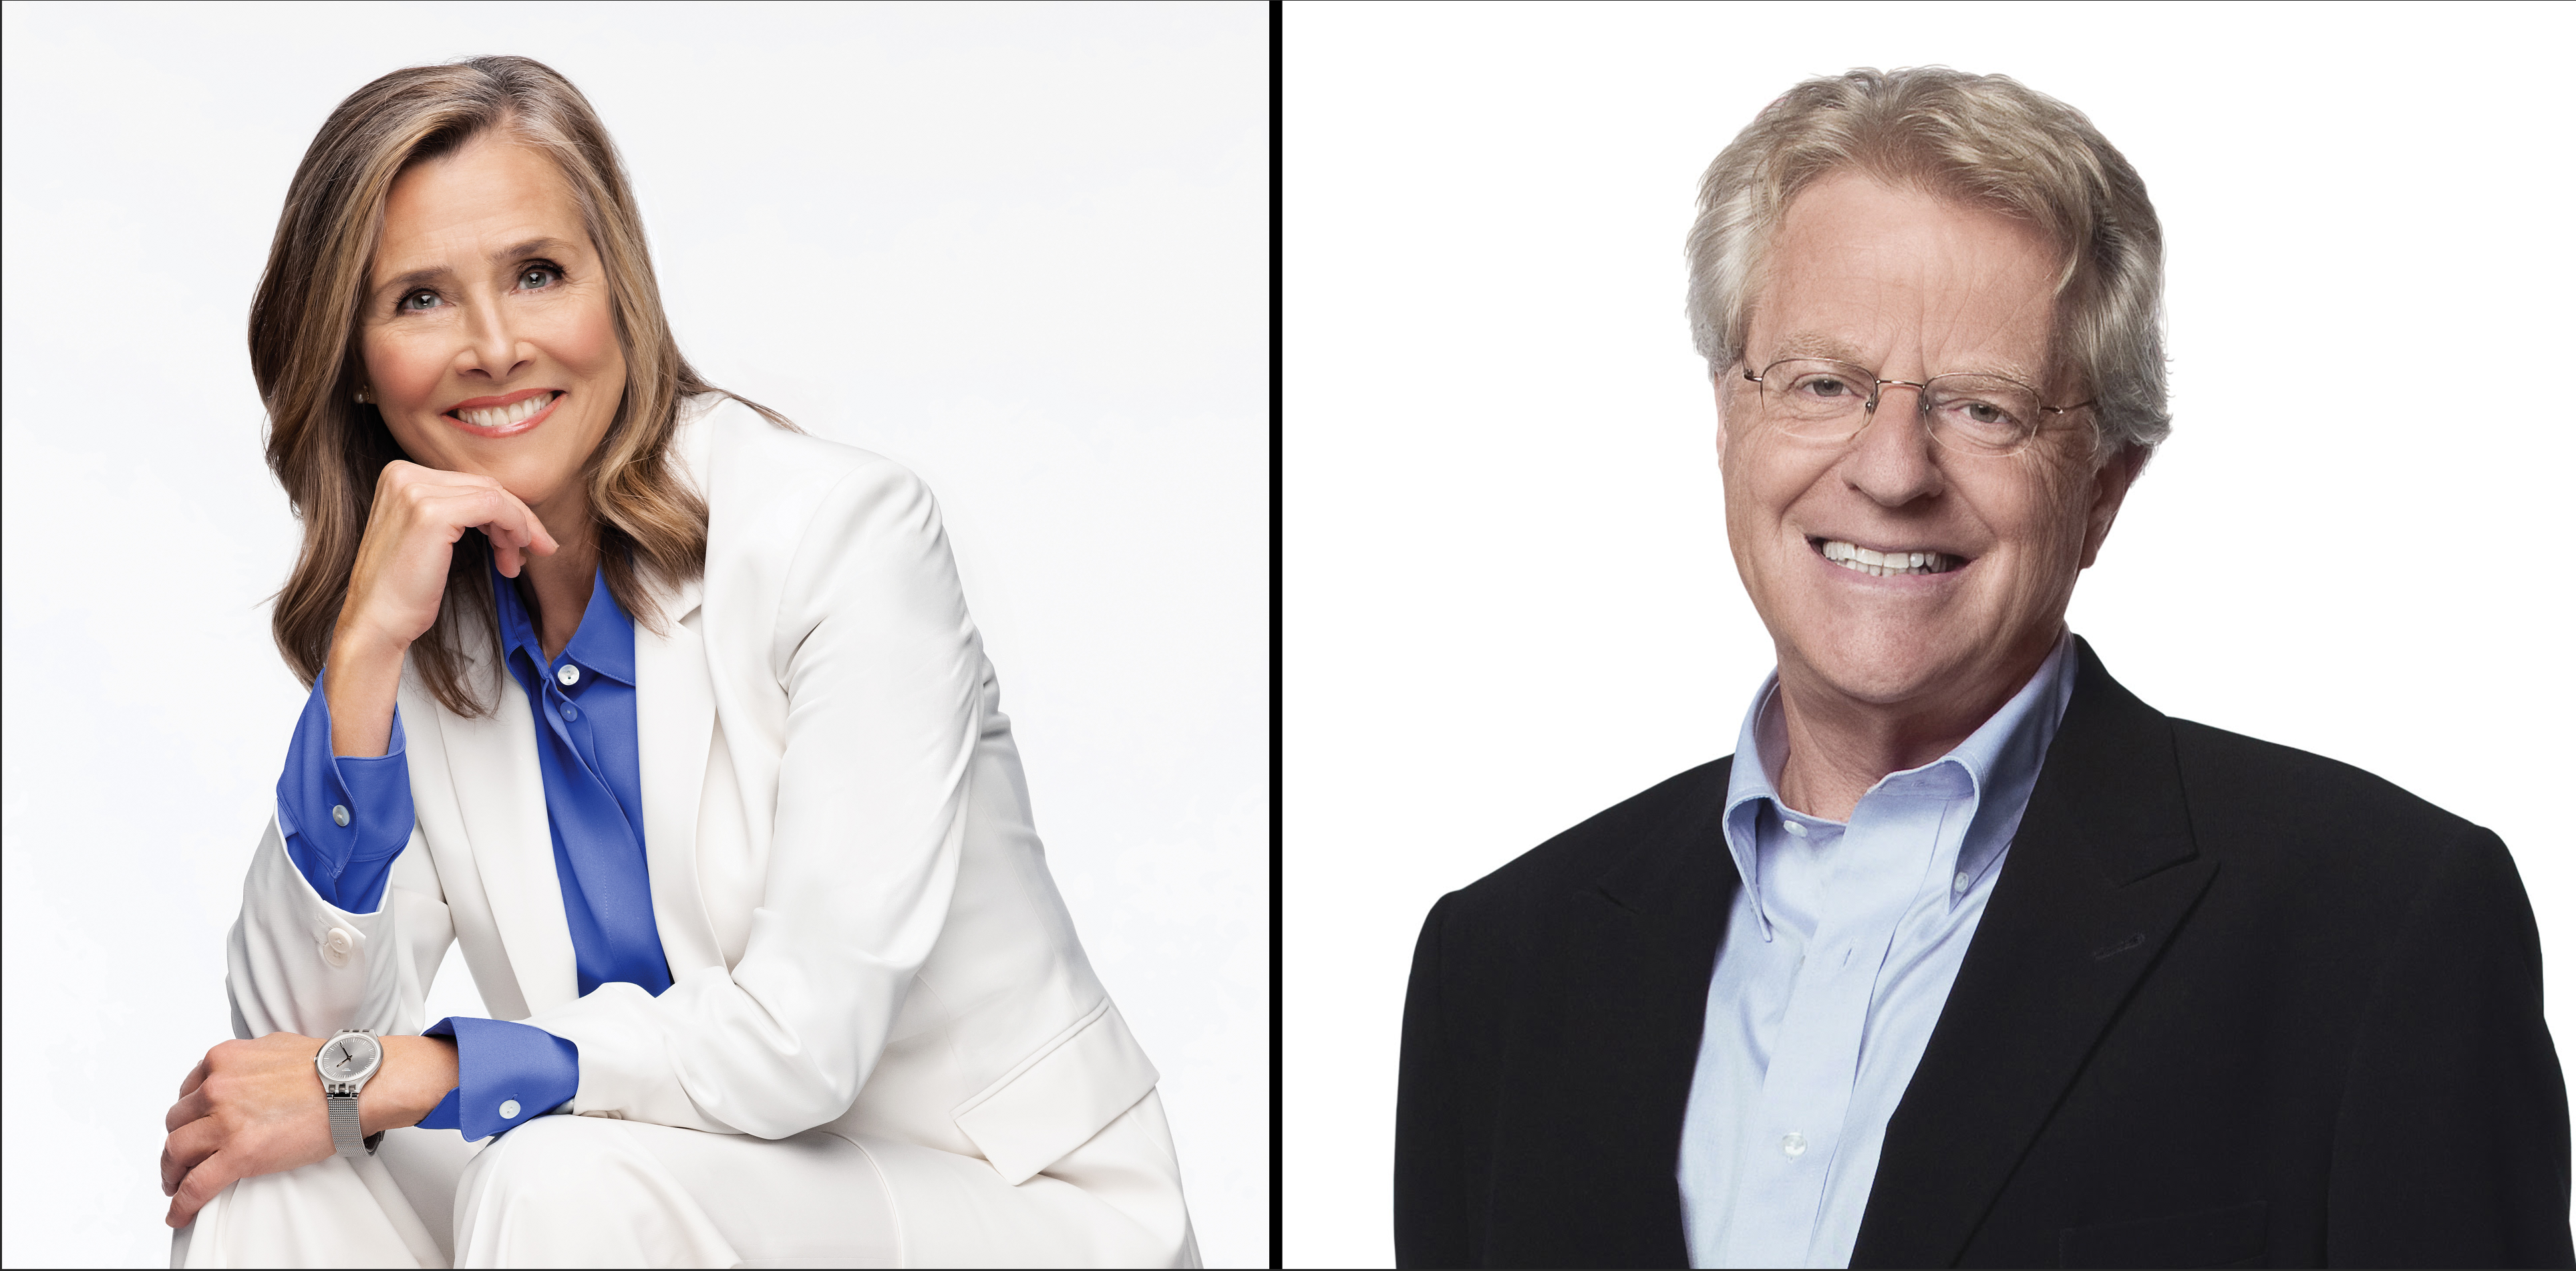 Meredith Vieira and Jerry Springer added as presenters at Parrot Analytics' Global TV Demand Awards